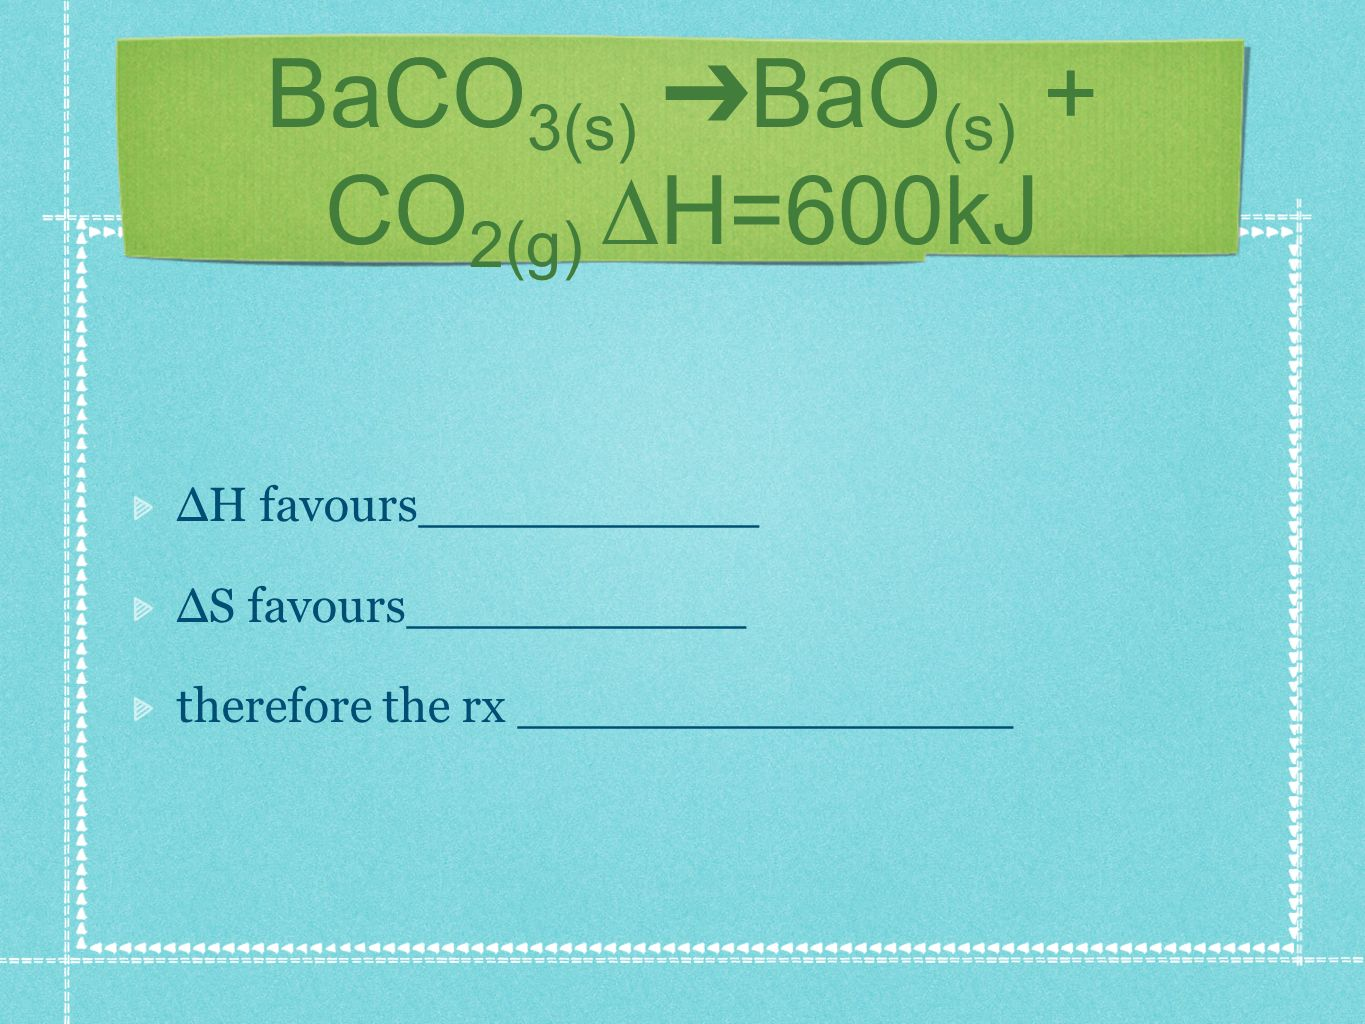 BaCO 3(s) BaO (s) + CO 2(g) H=600kJ H favours___________ S favours___________ therefore the rx ________________